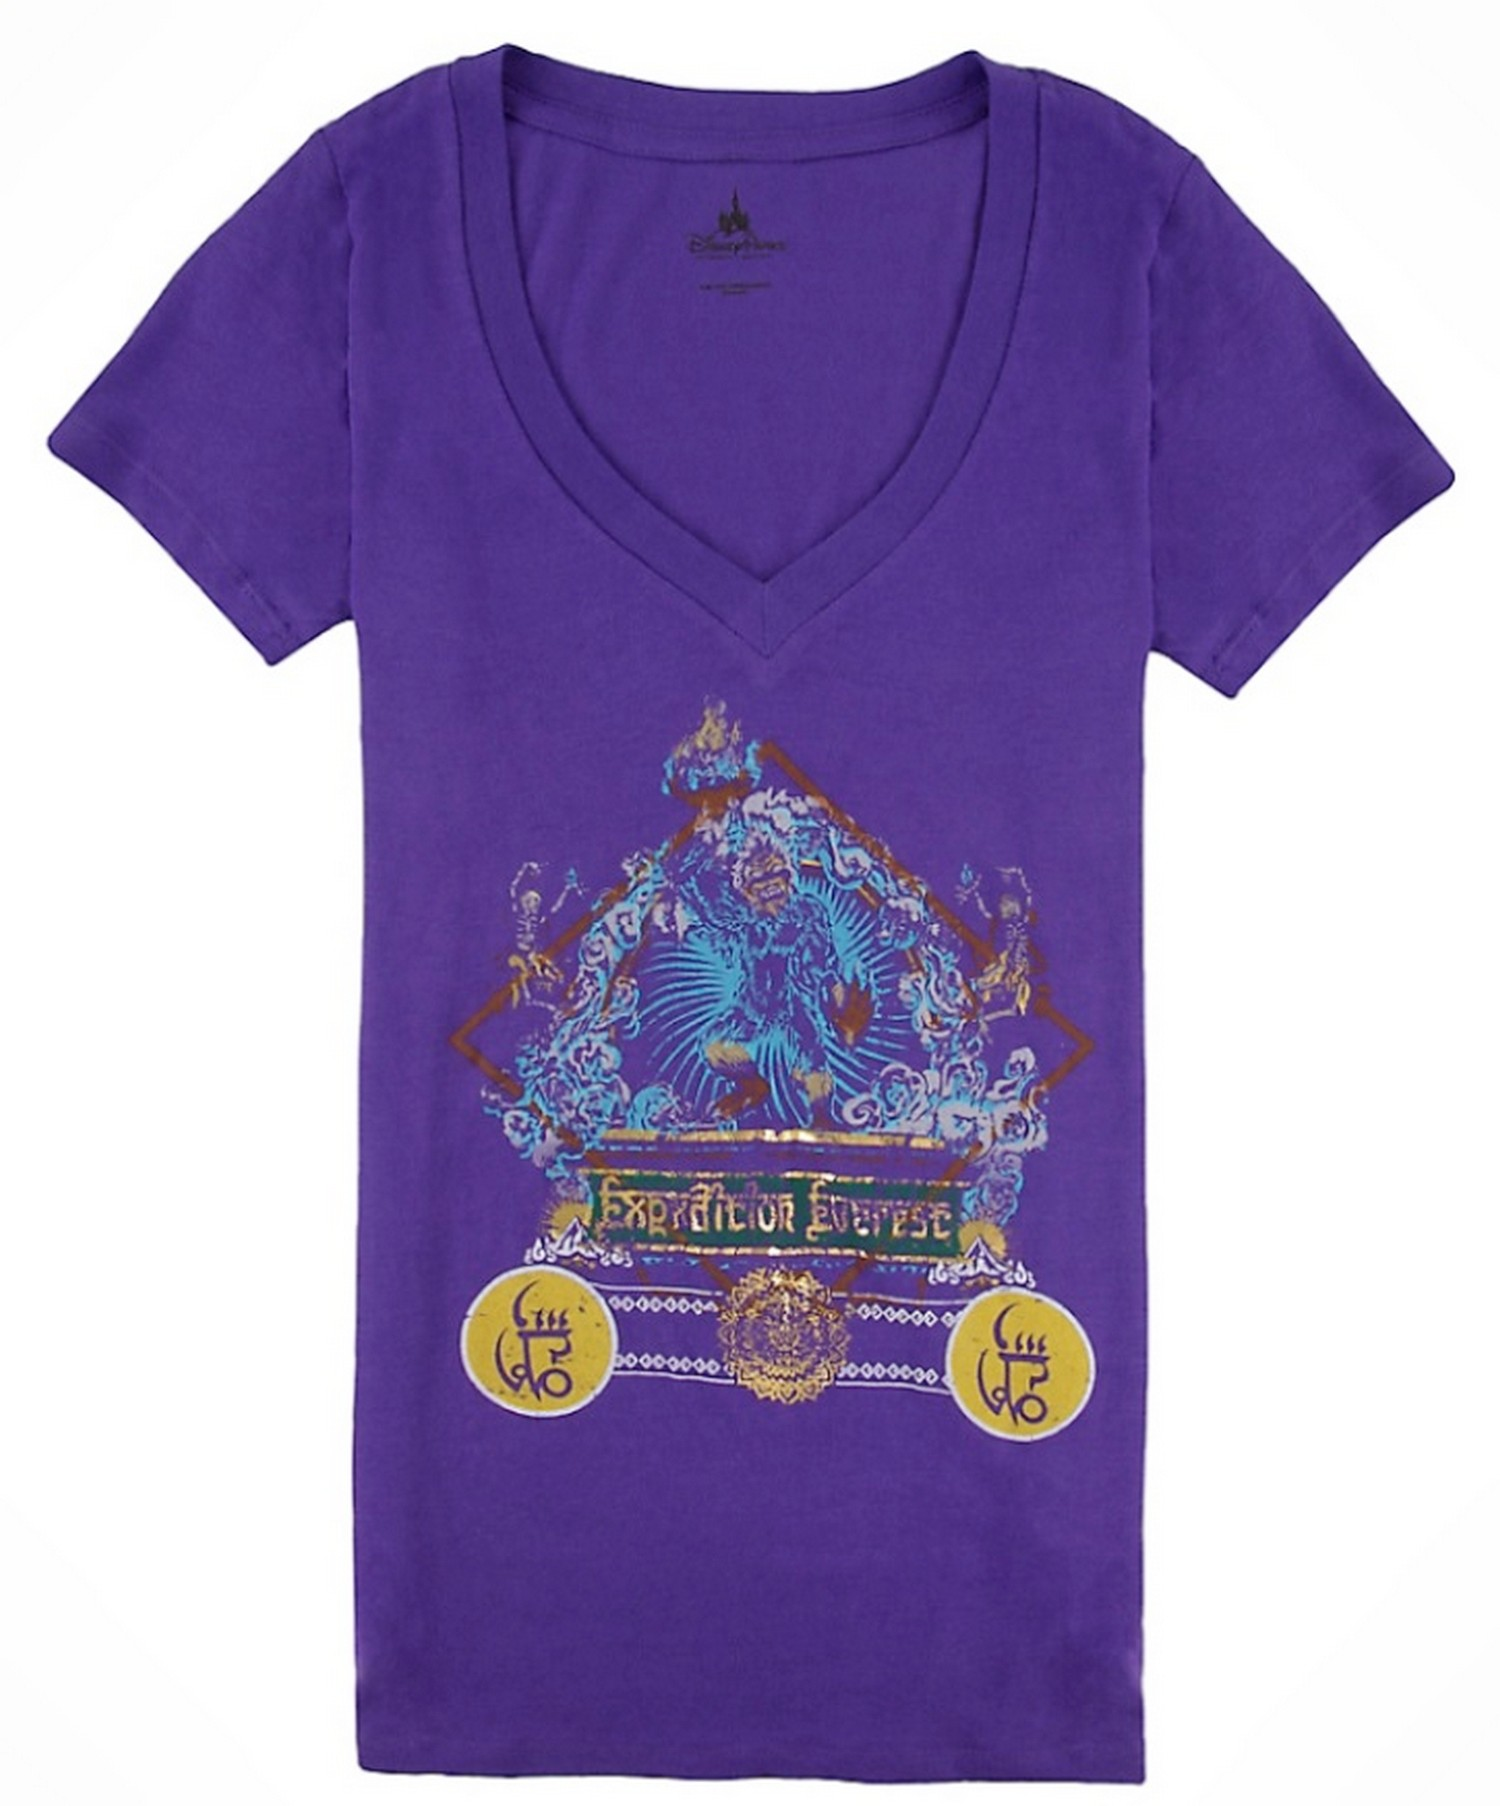 Expedition Everest V-Neck Purple Adult T-Shirt (Tee, Tshirt or T shirt) ~ Disney Animal Kingdoms